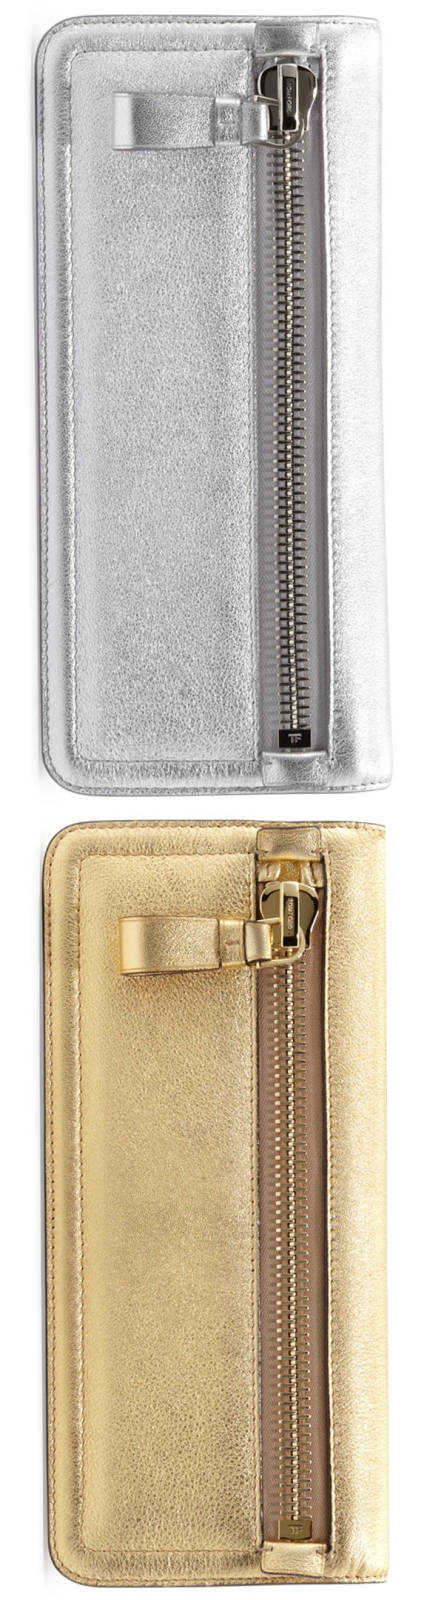 Tom Ford Jennifer Metallic Zip Clutch Bag